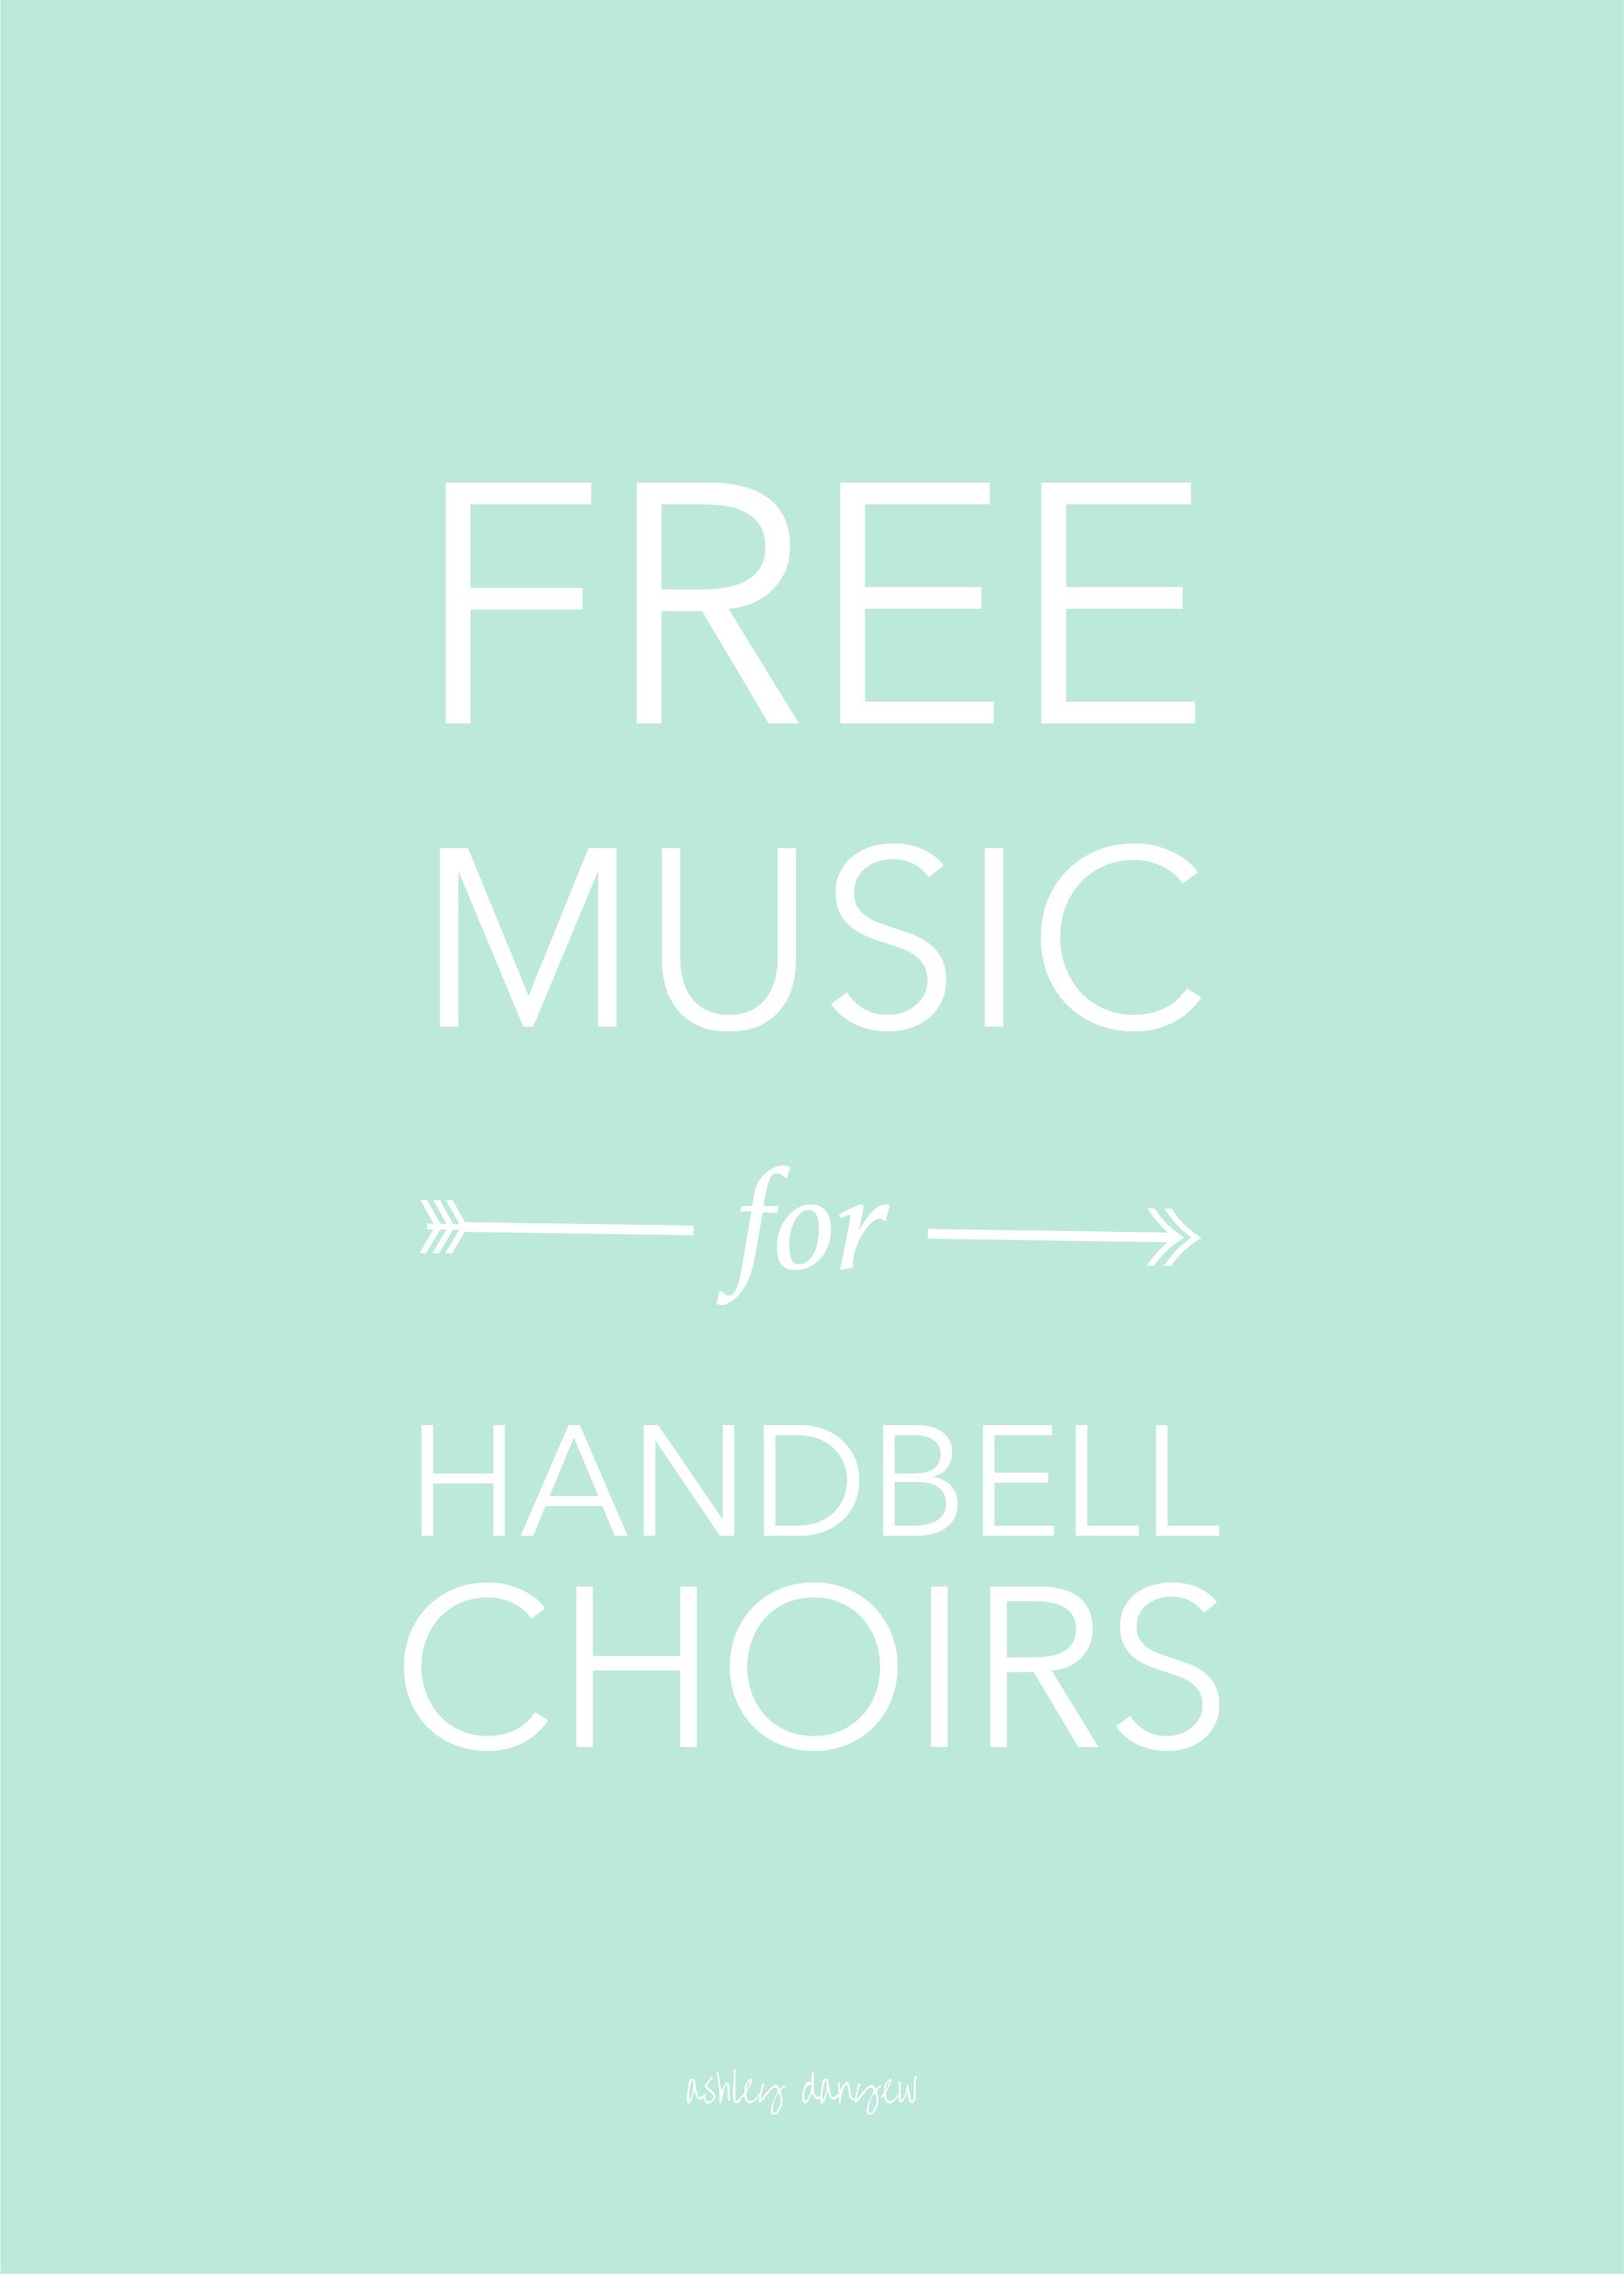 Free Music for Handbell Choirs-01.png